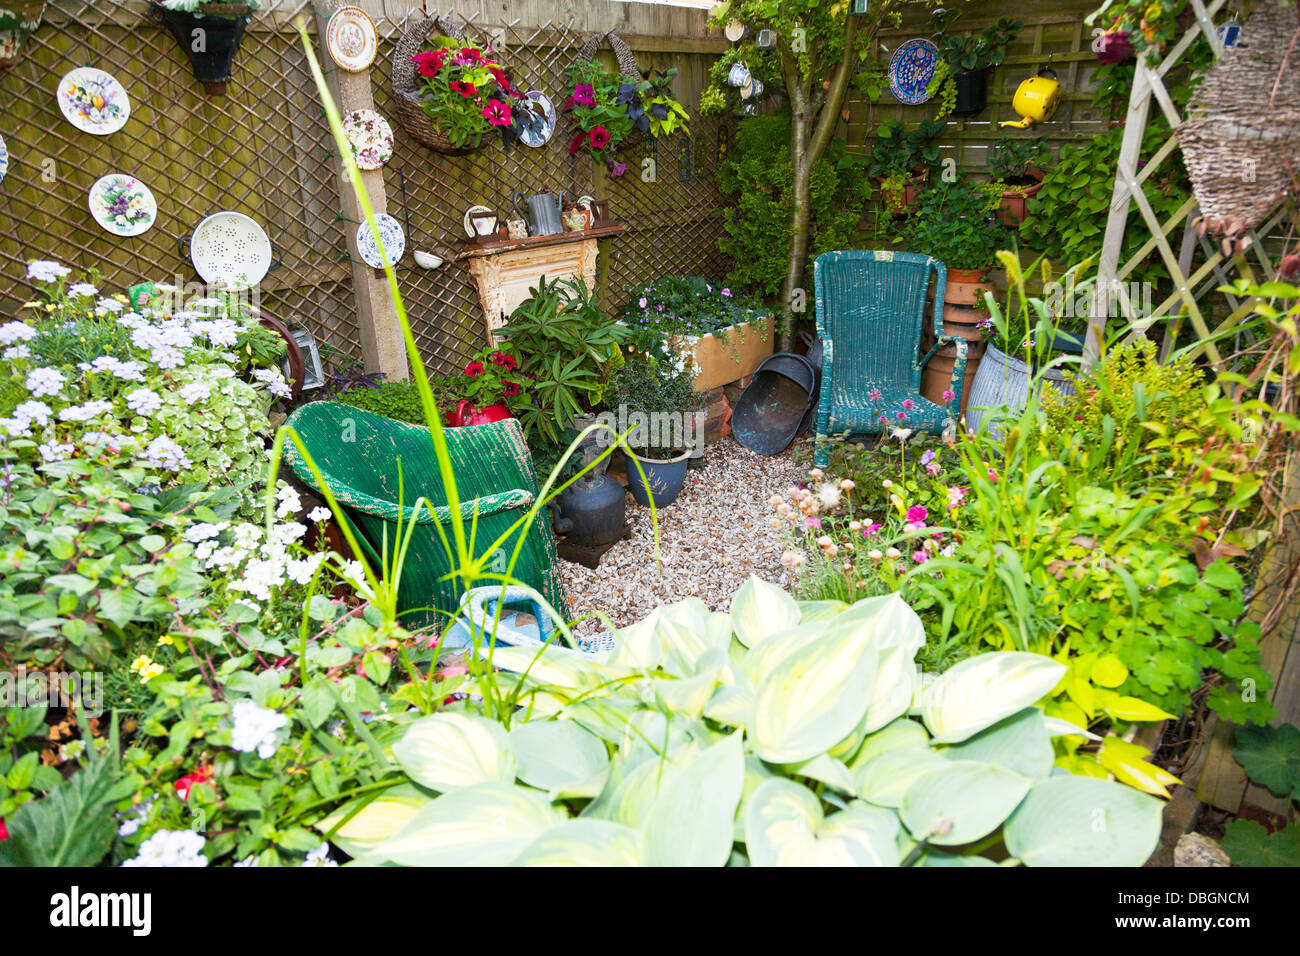 Typical english garden plants flowers planted around for Typical landscaping plants